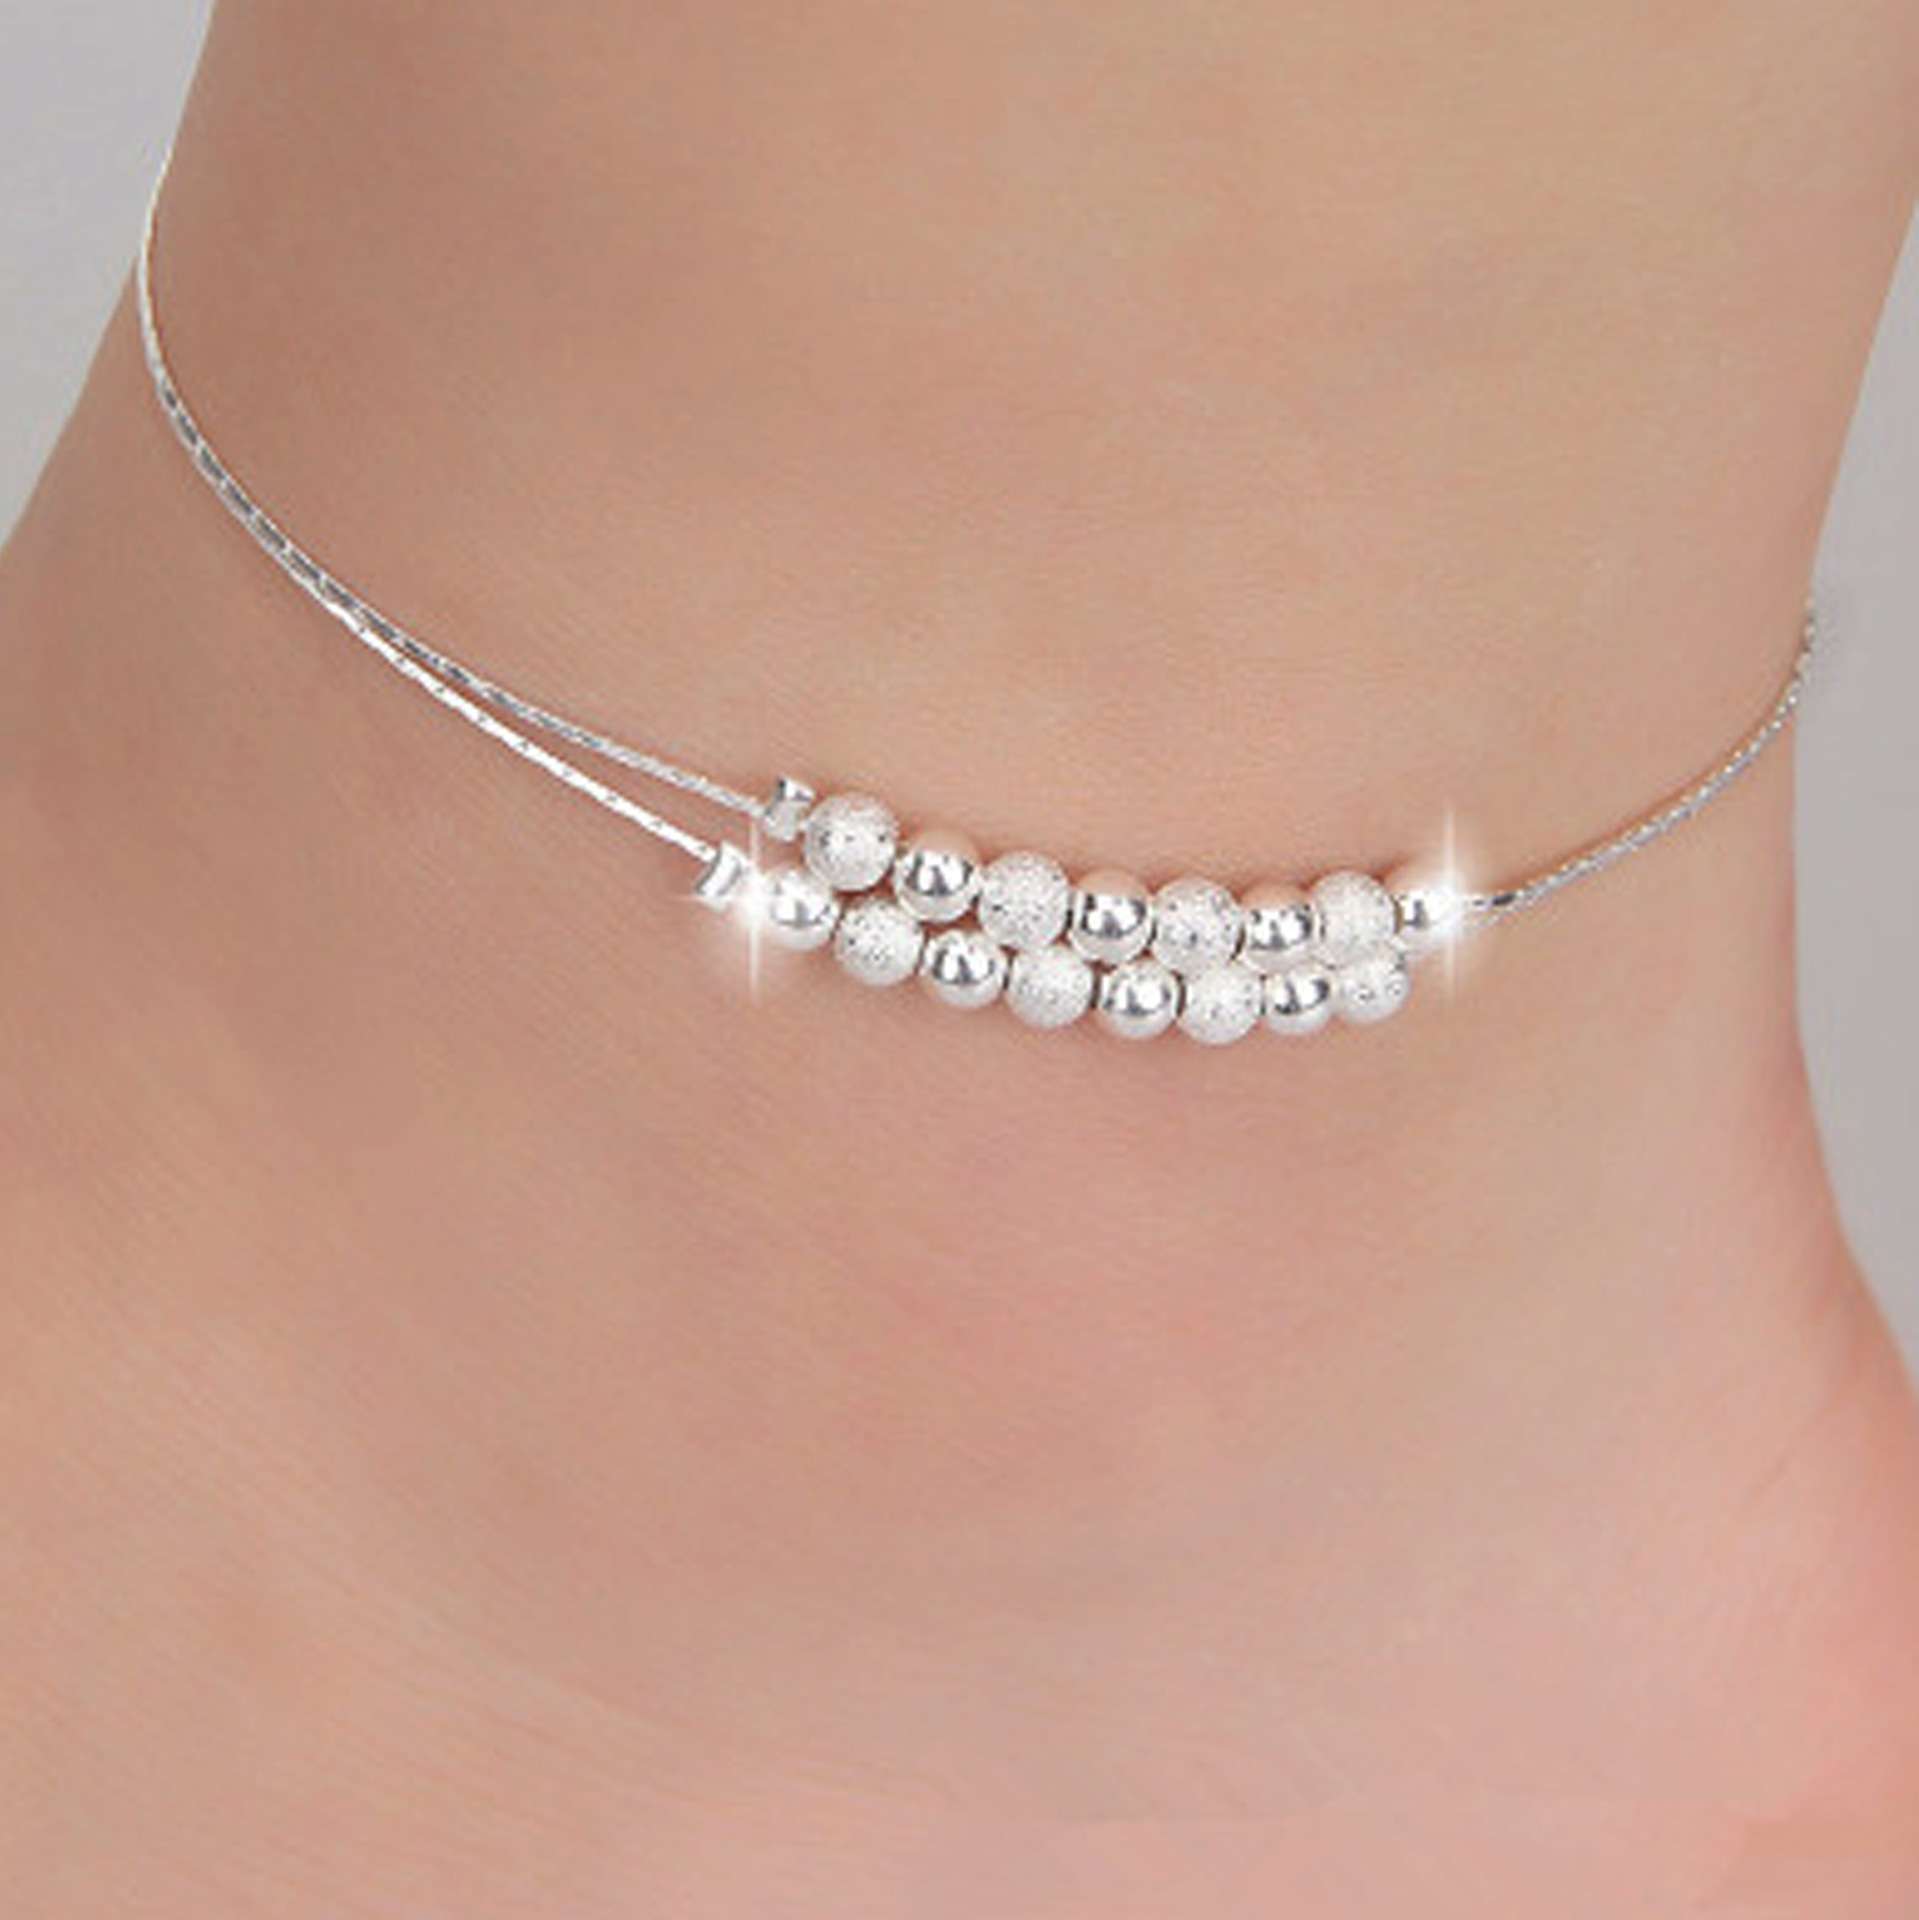 Cheap Marketing Distribution, 2020 New Fashion Anklets Beaded Multi-layer Simple Wild Lady Back Ankle Jewelry Wholesale